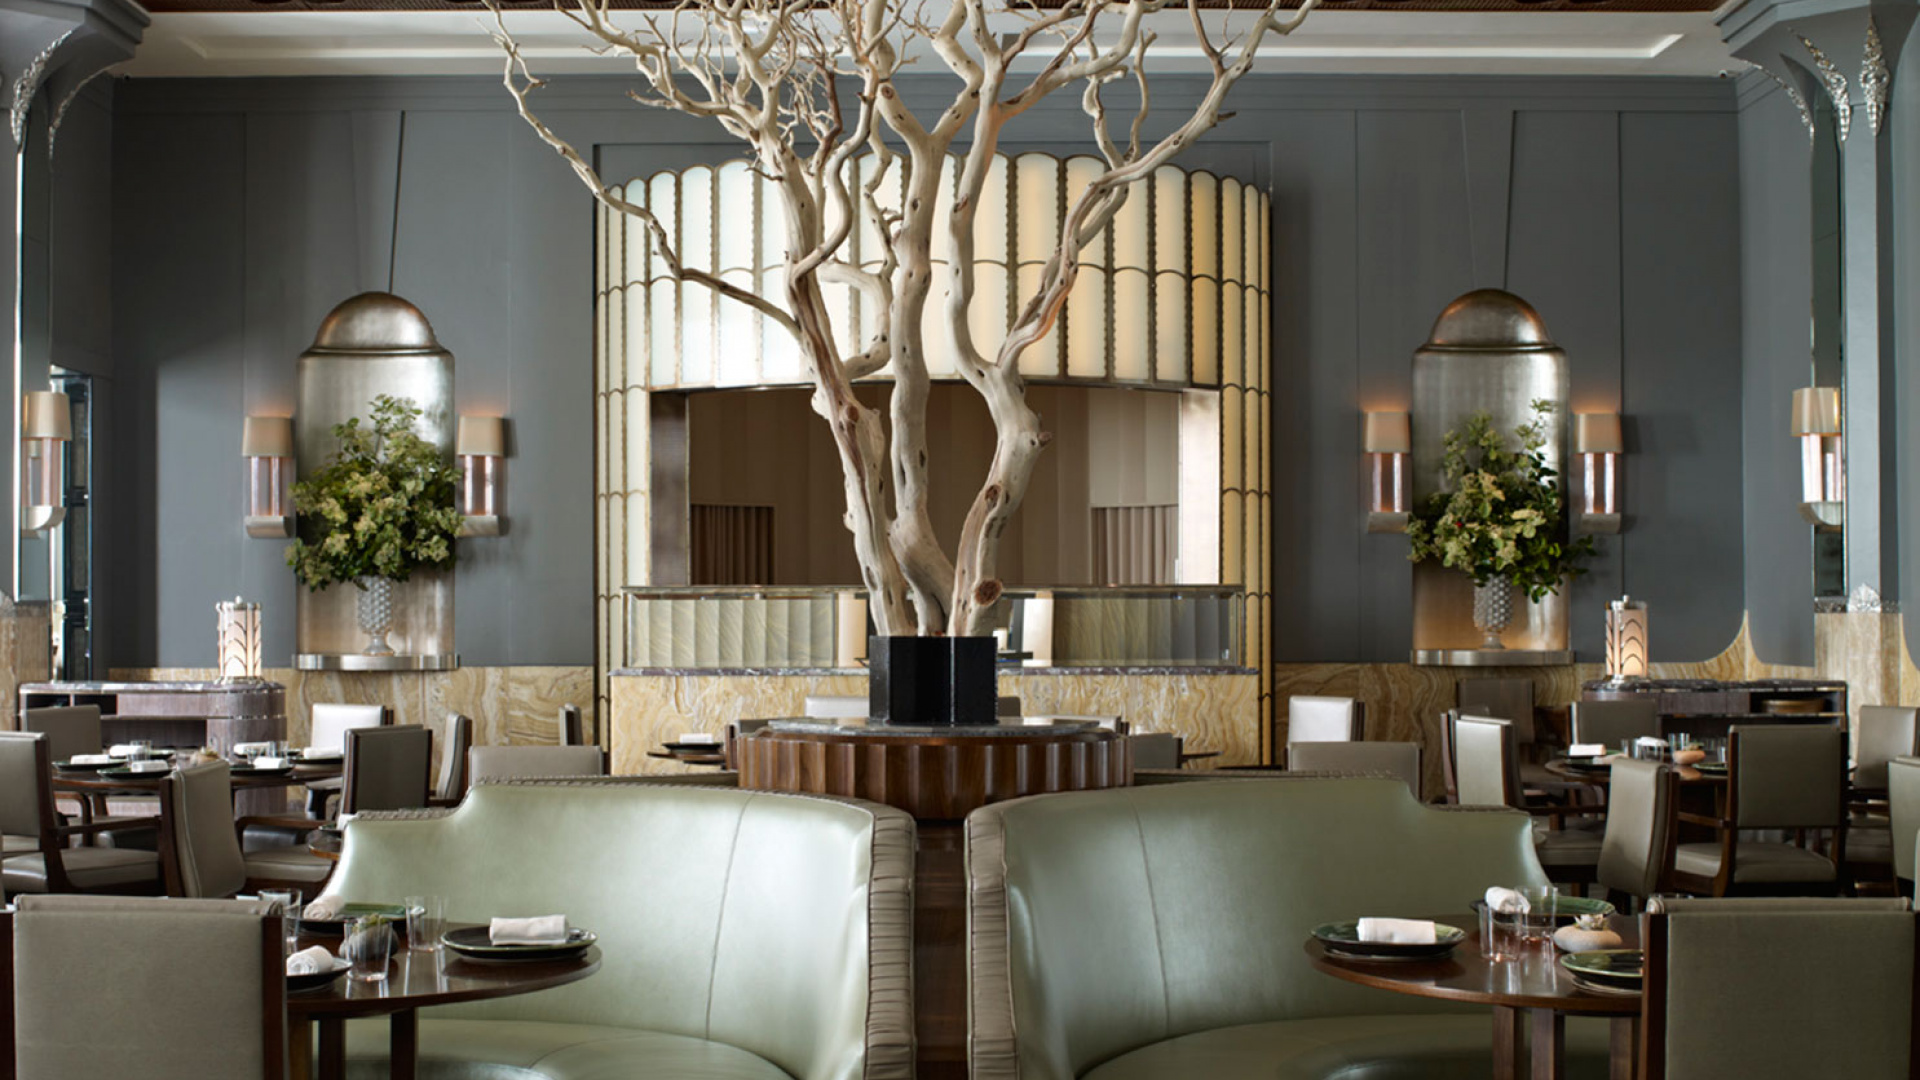 London's best development menus: Aulis at Fera at Claridges